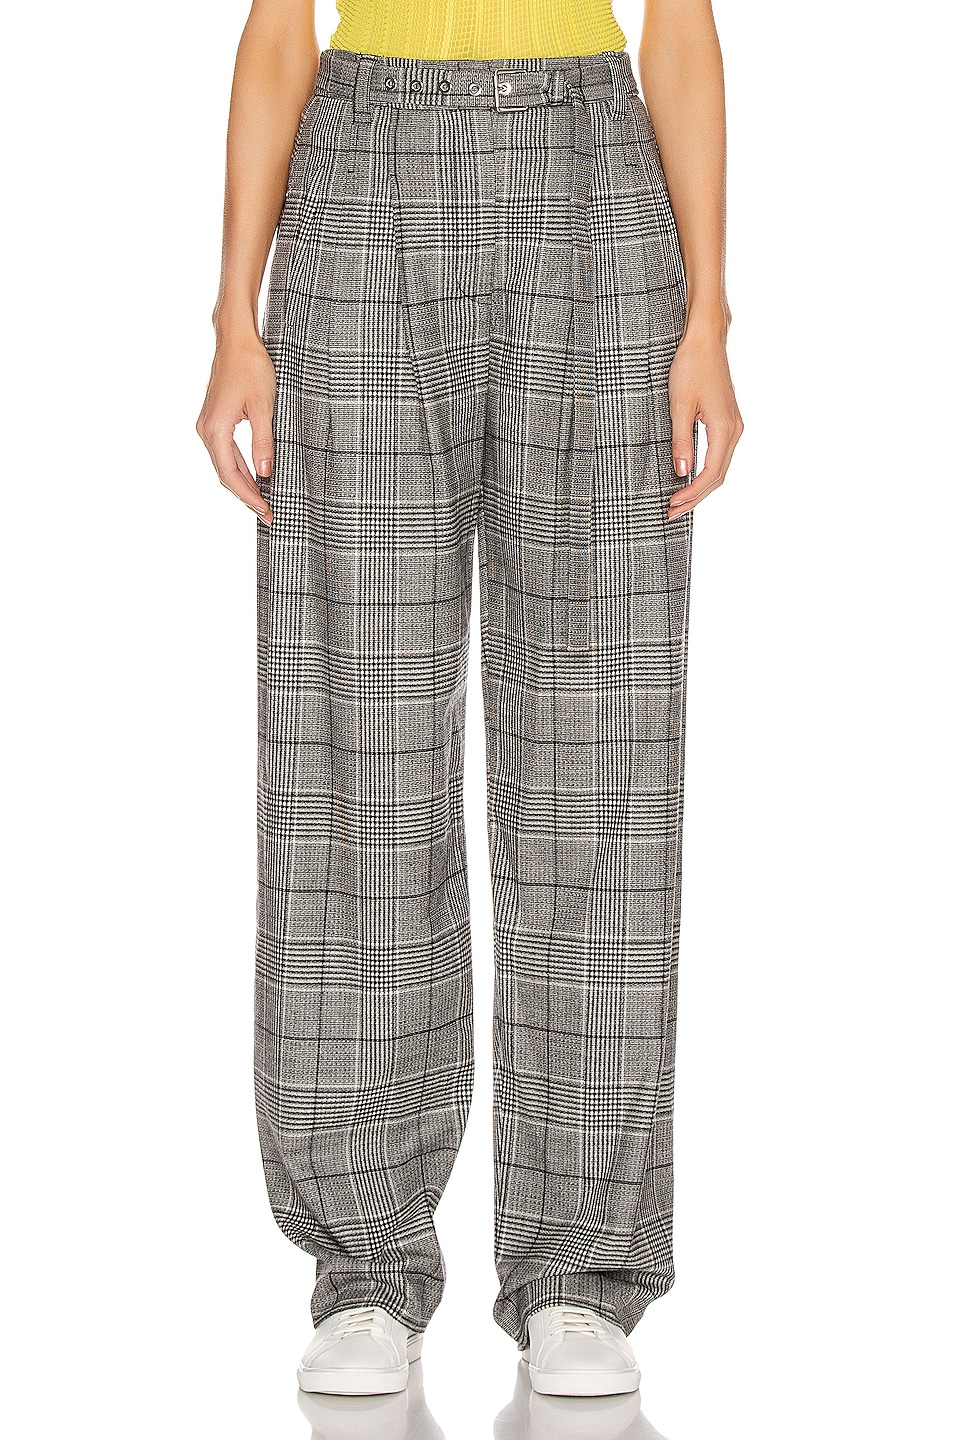 Image 1 of Proenza Schouler Plaid Exaggerated Plaid Pant in Black & White